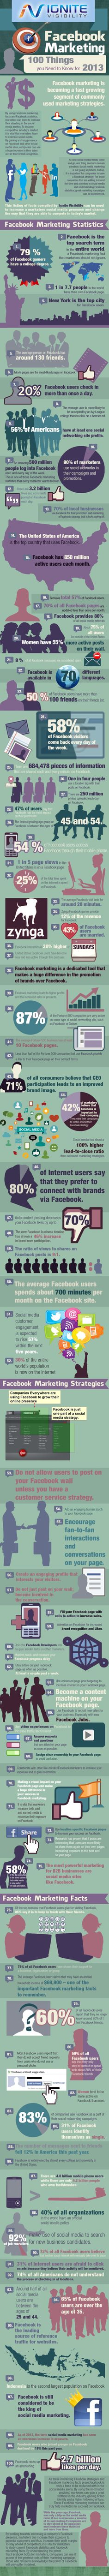 #SocialMedia Tips For All Kind Of Users